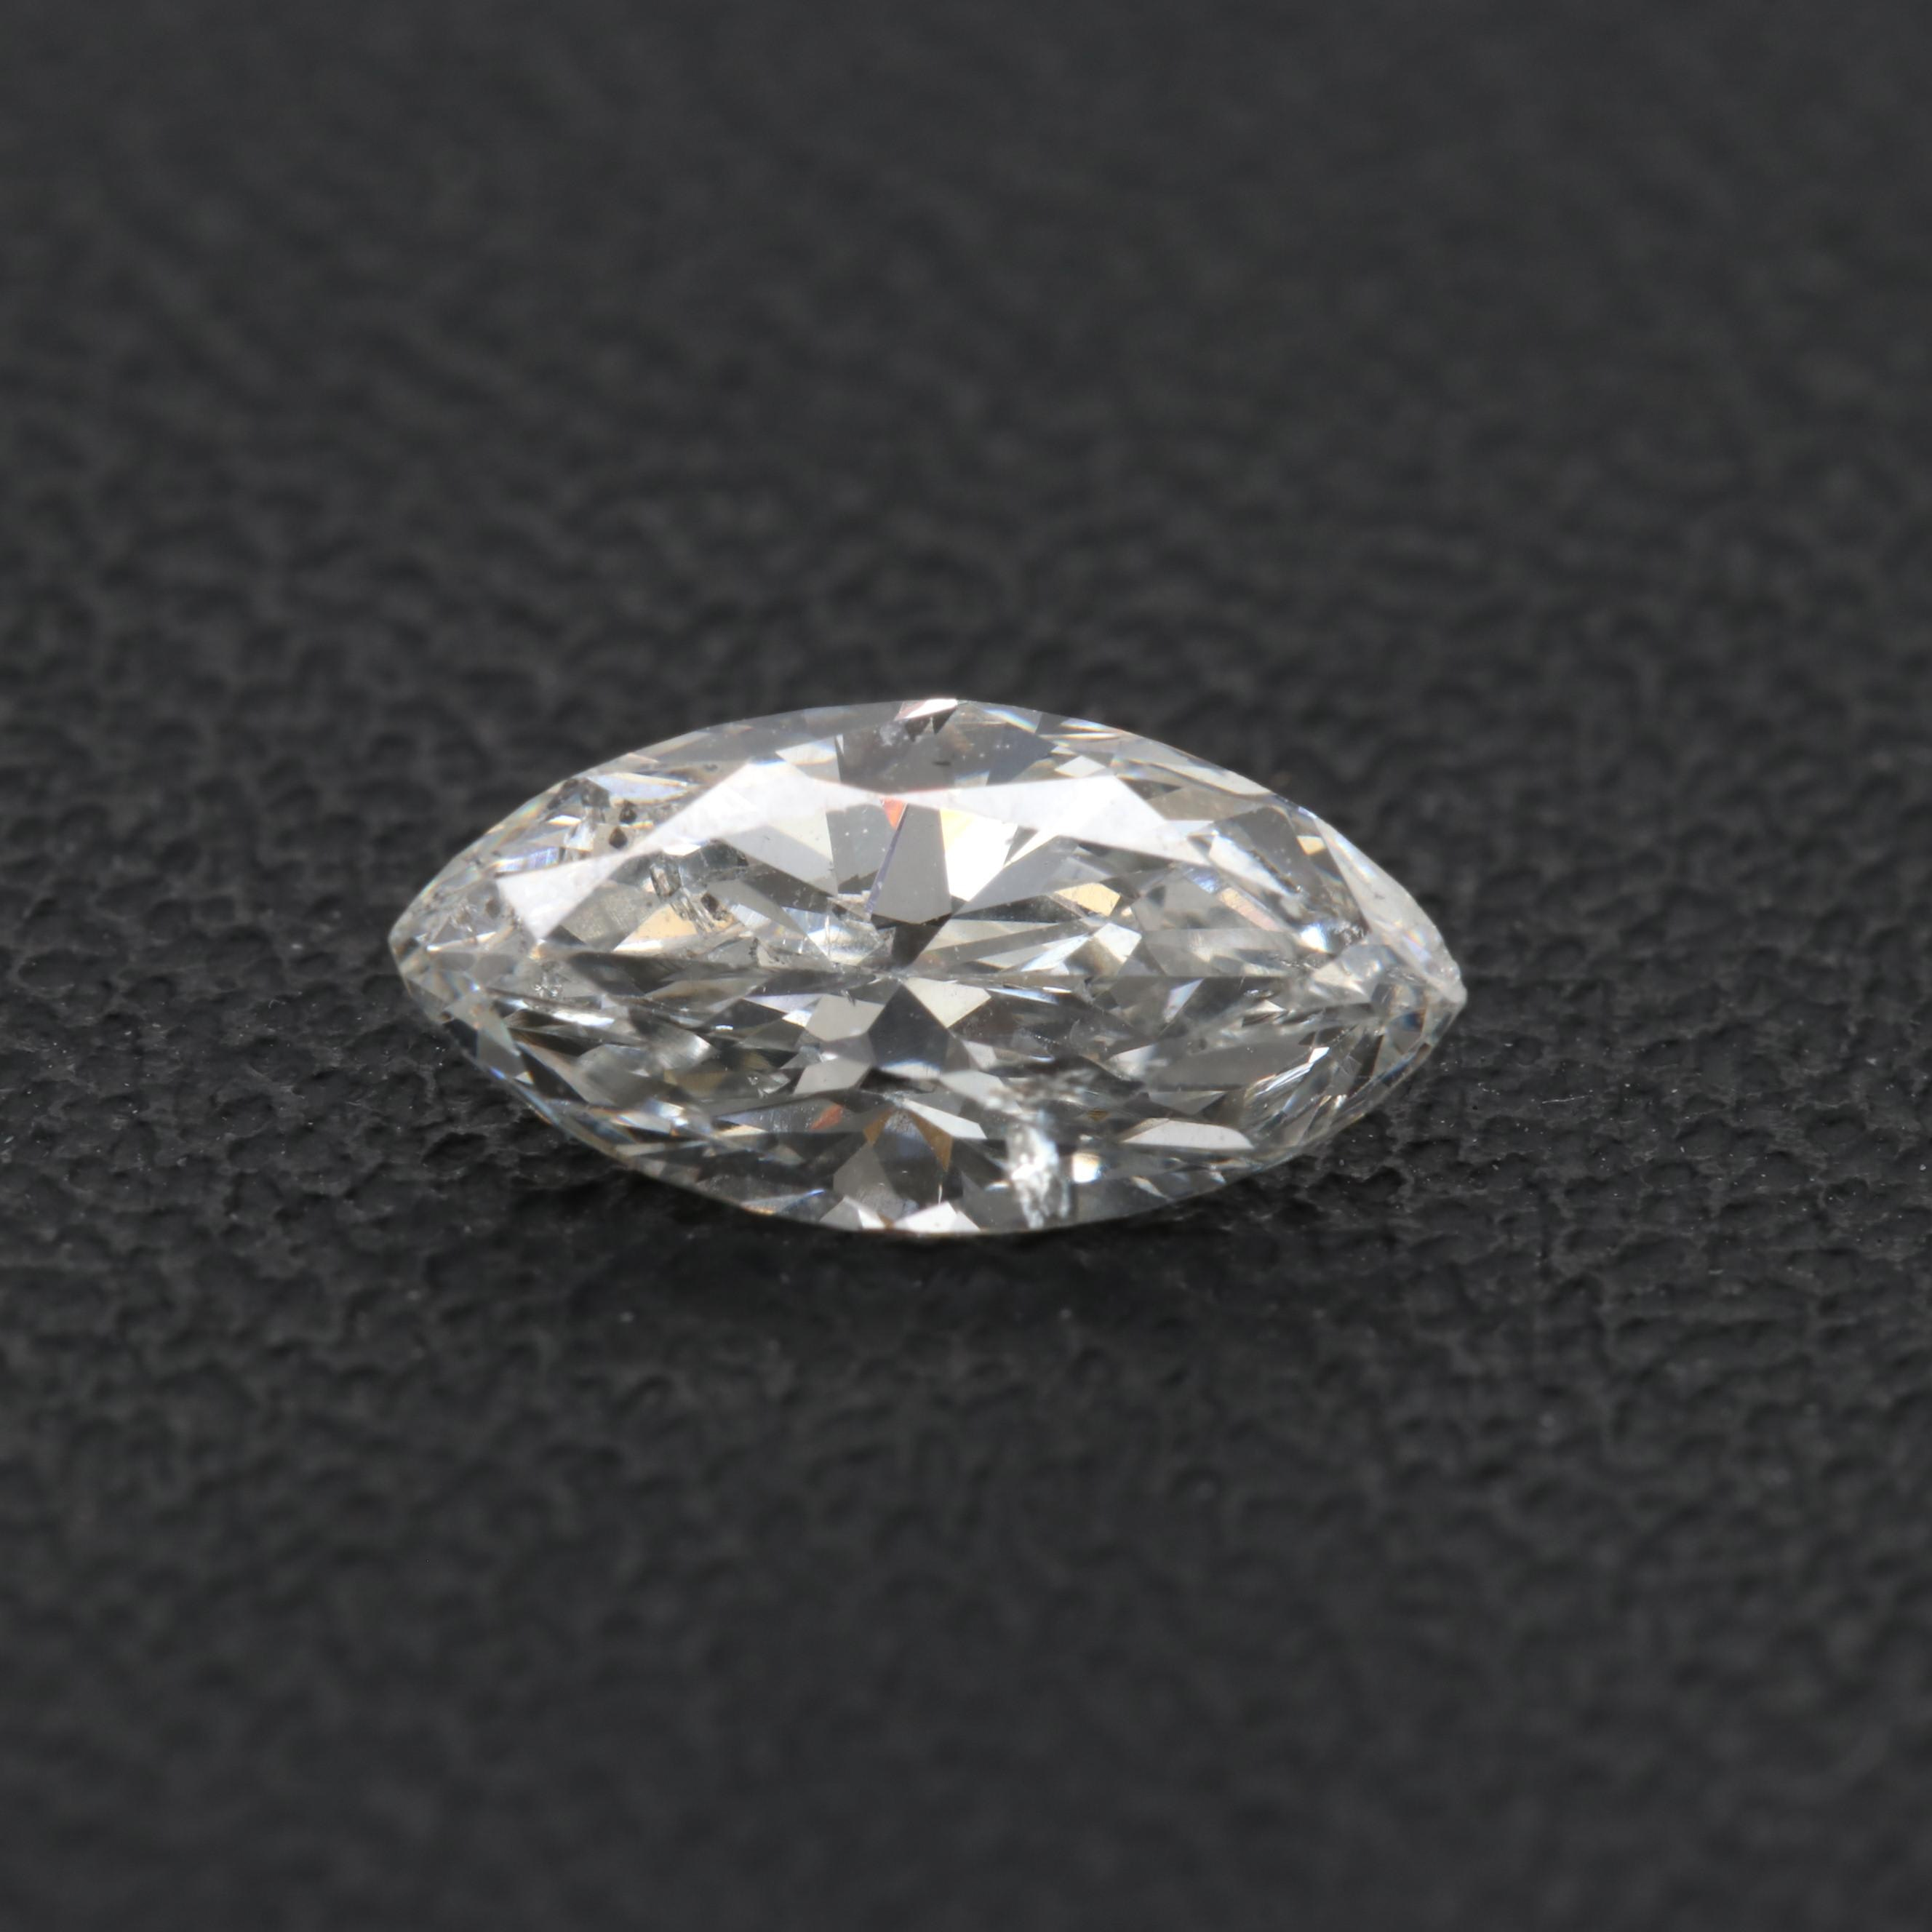 Loose Marquise Cut Diamond